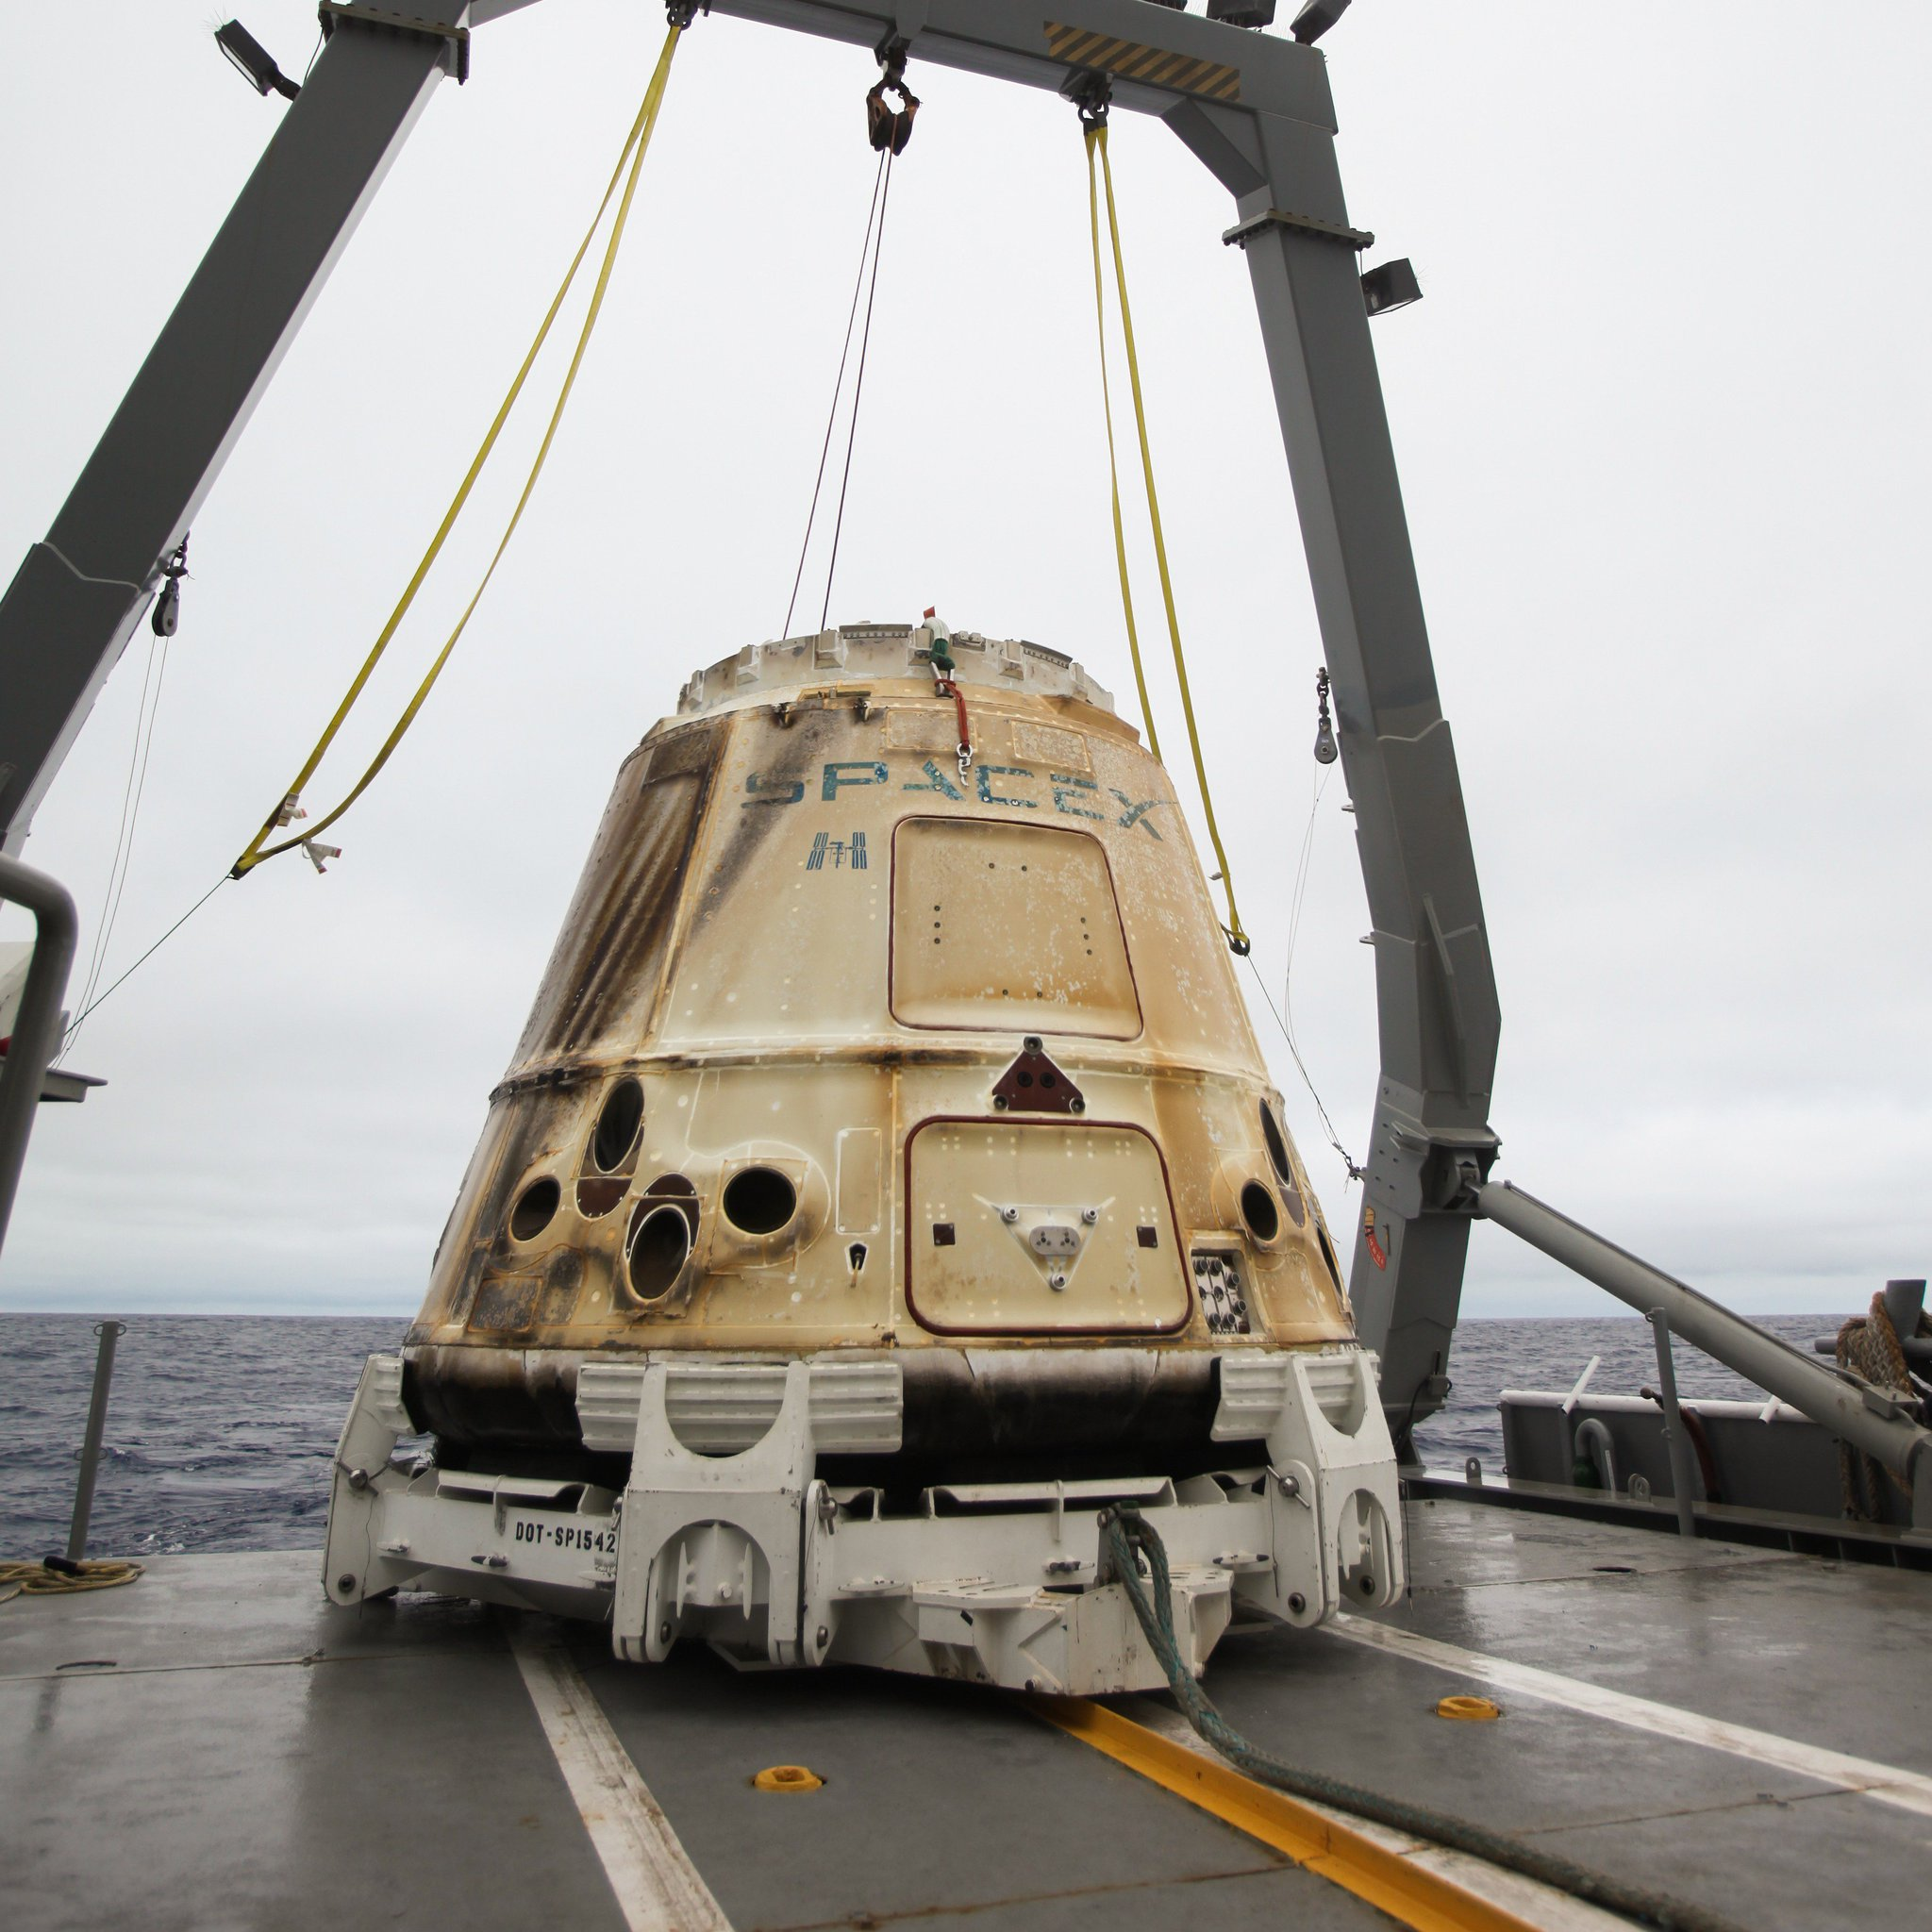 Falcon 9 (CRS-17) - CCAFS - 04.05.2019 - Page 6 D8PTe82V4AAV-Eh?format=jpg&name=large